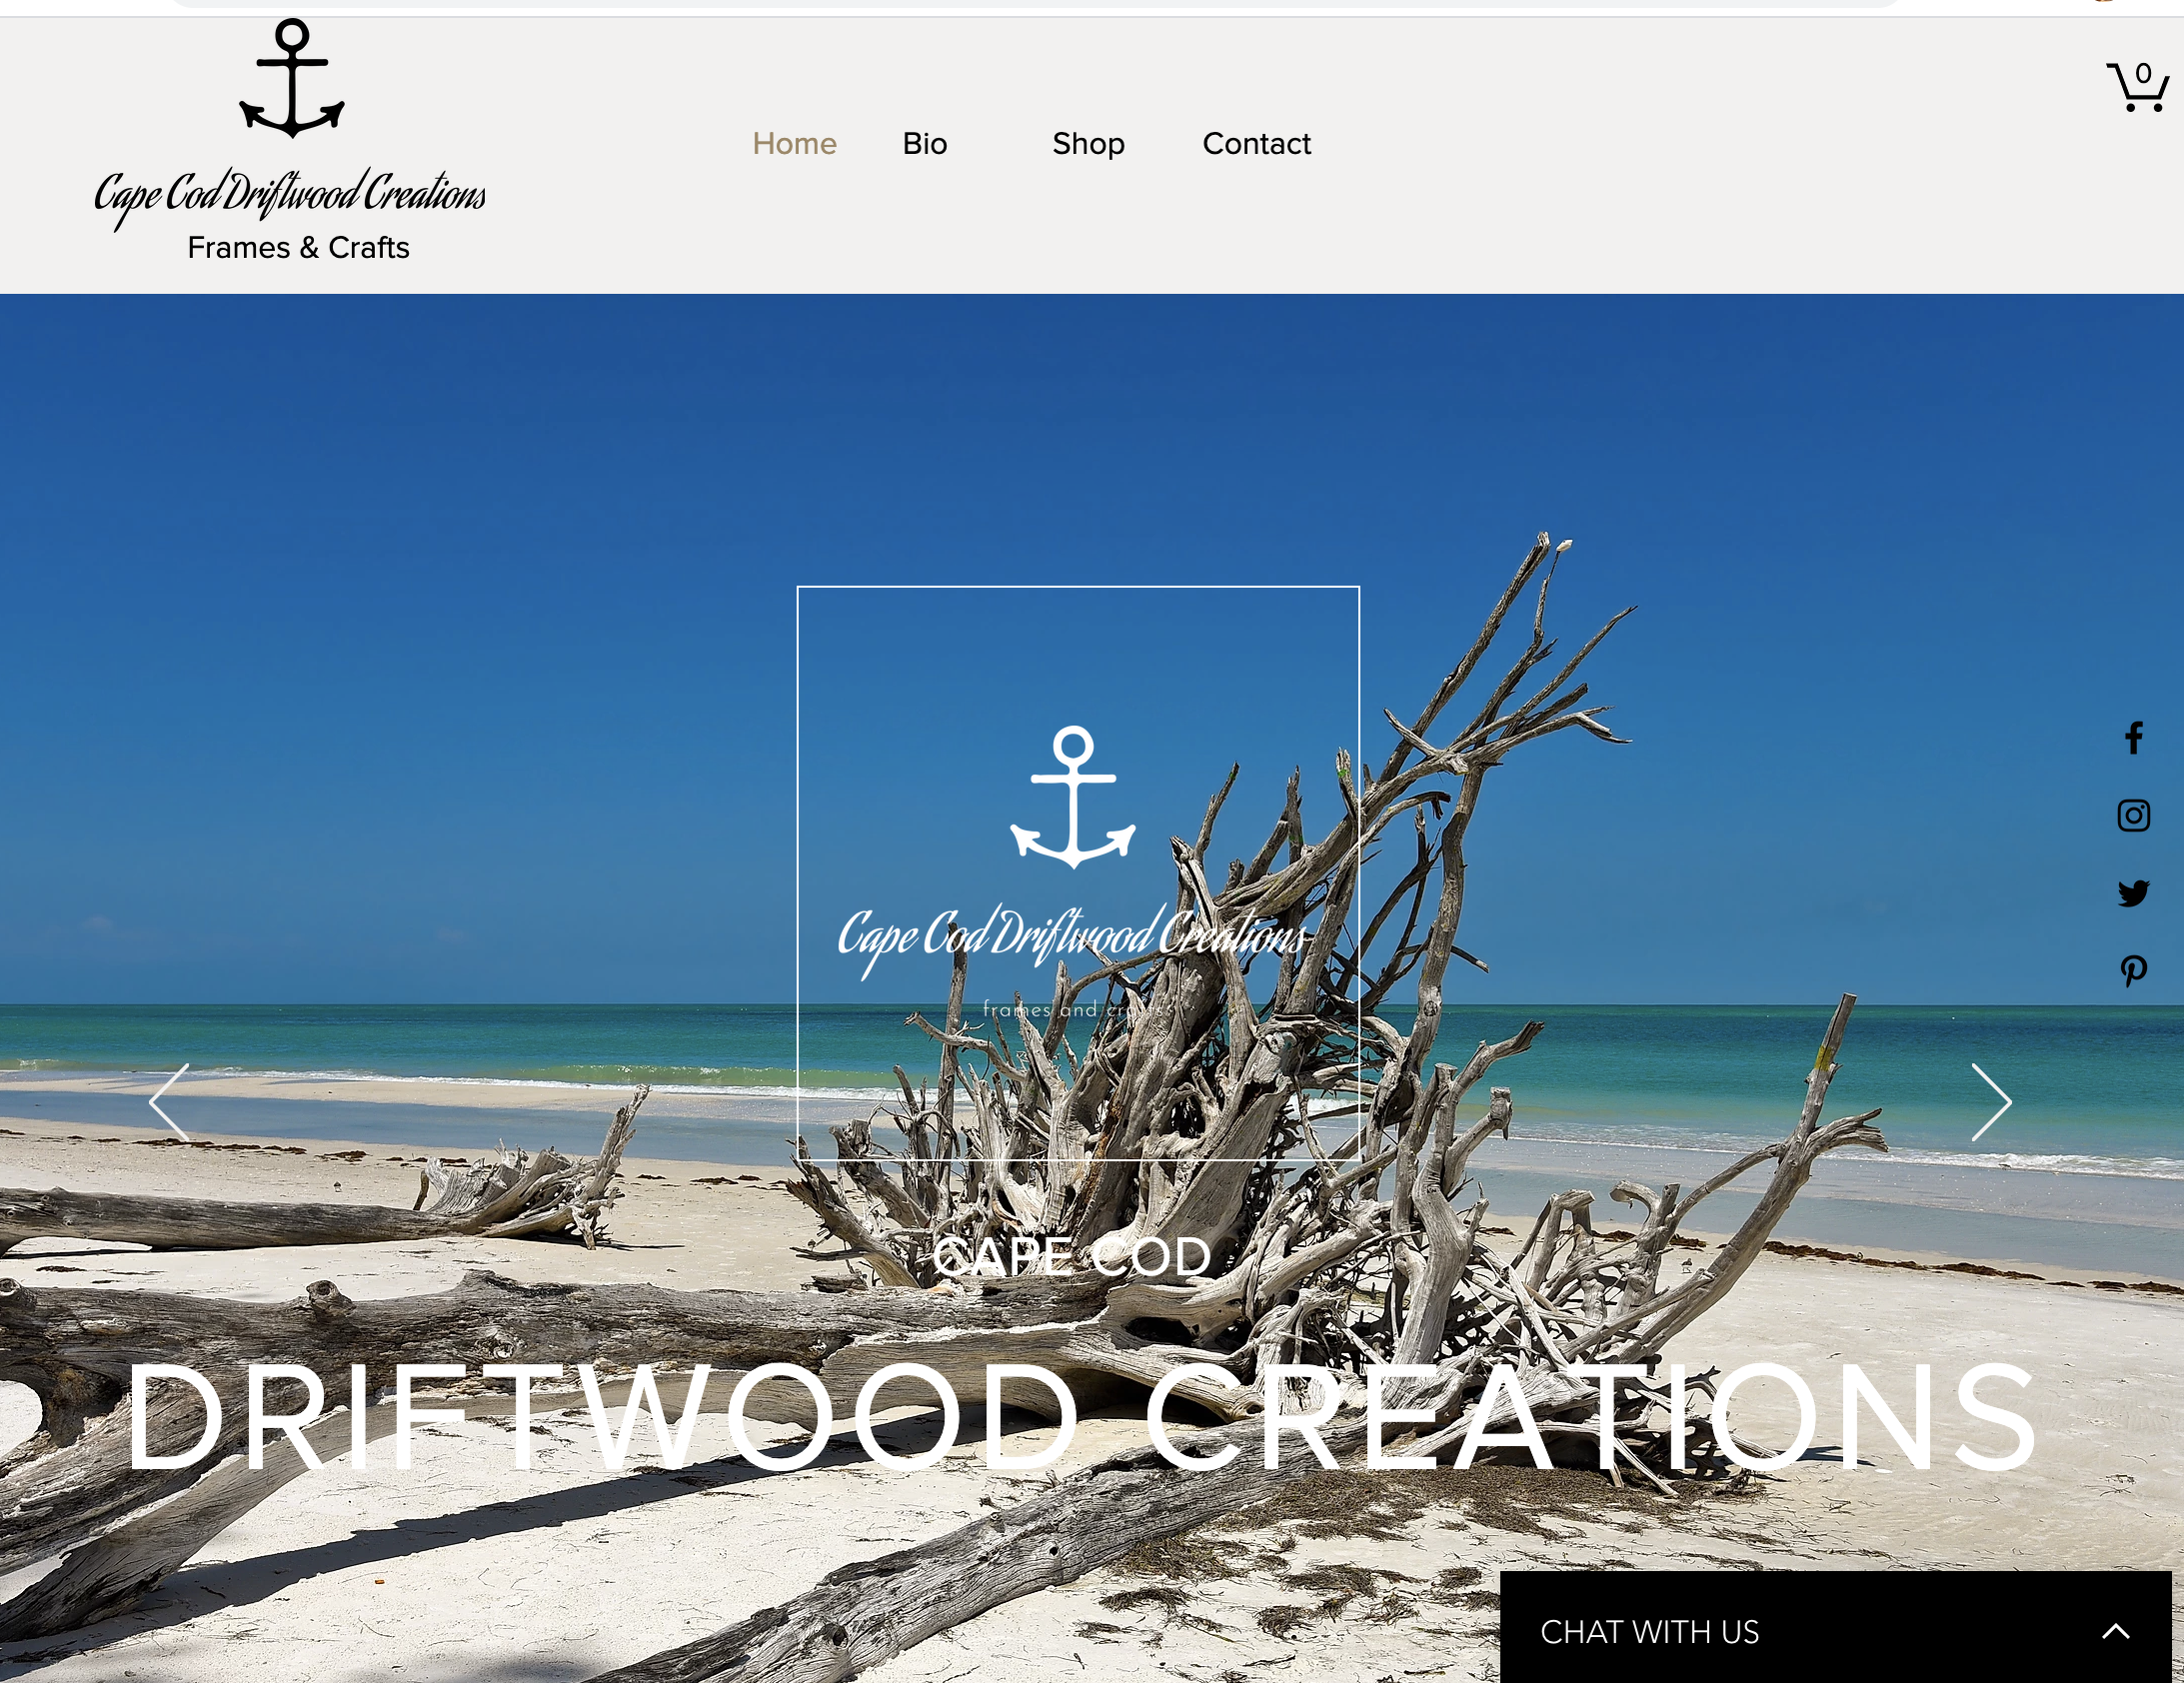 Cape Cod Driftwood Creations